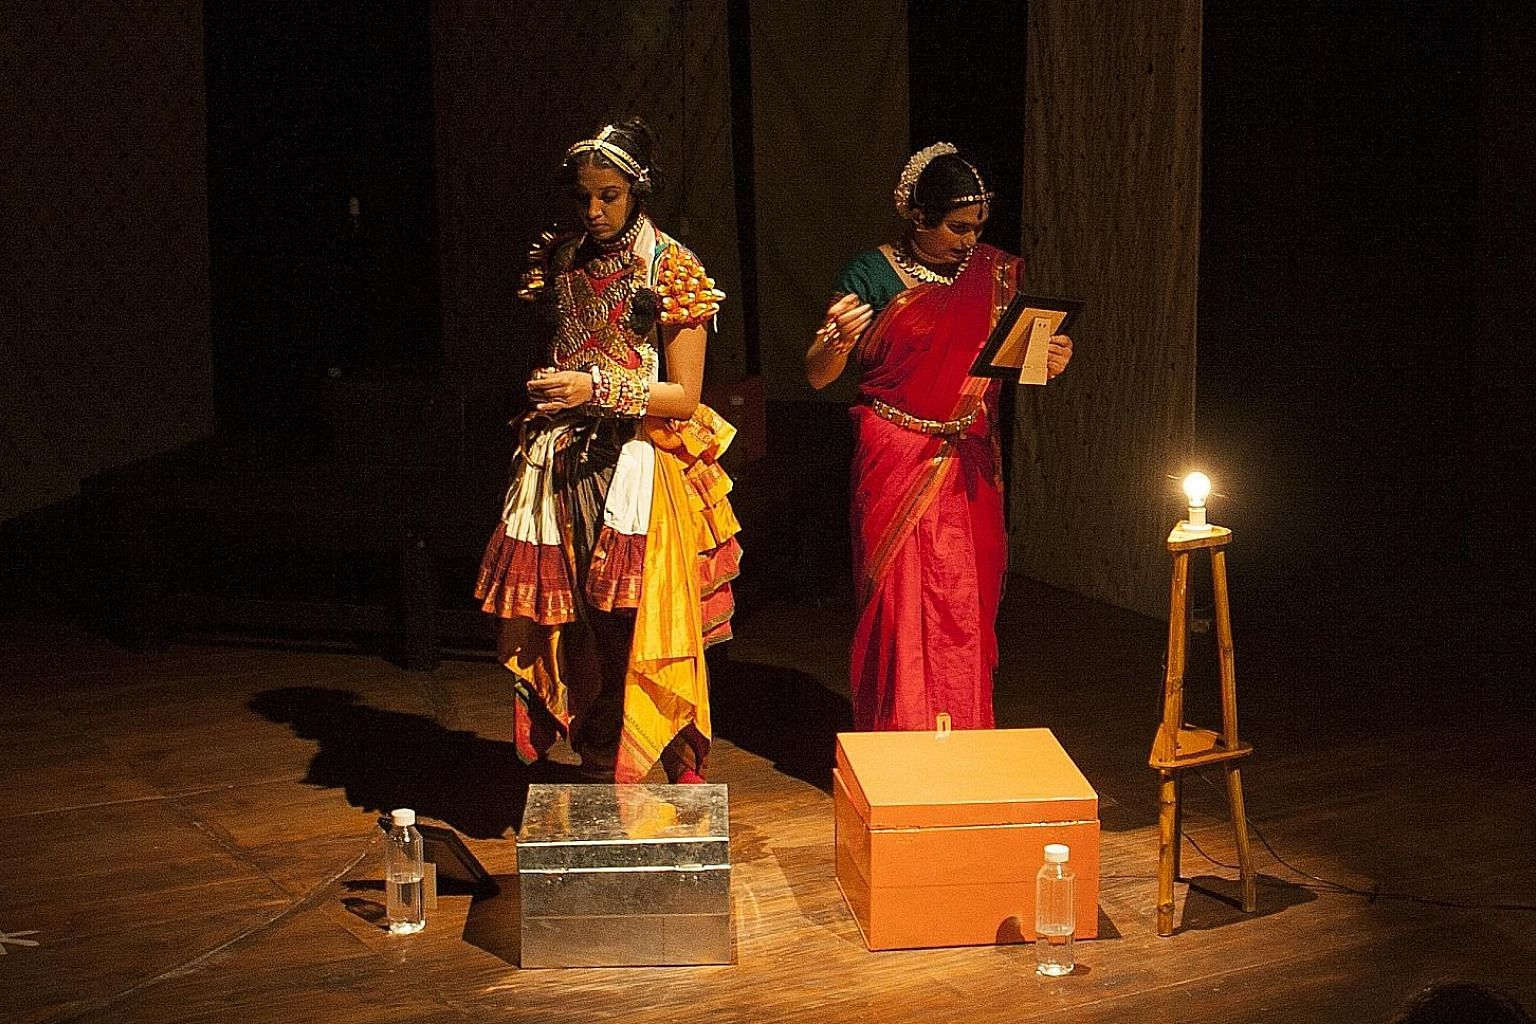 Akshayambara by Dramanon from India examines what happens when roles are reversed in a traditionally male-dominated theatre practice called yakshagana.